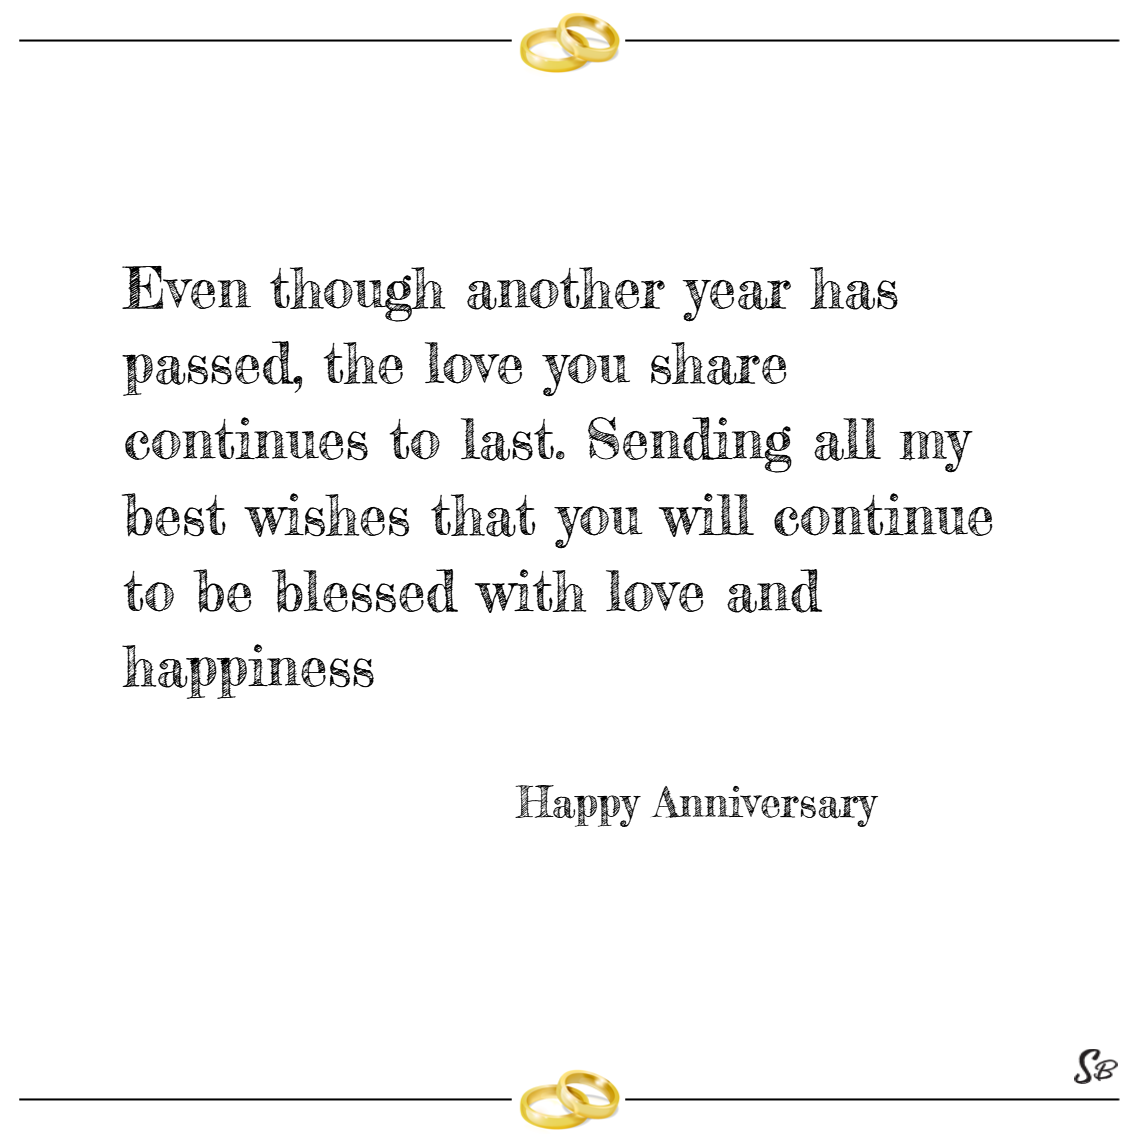 Even though another year has passed, the love you share continues to last. sending all my best wishes that you will continue to be blessed with love and happiness